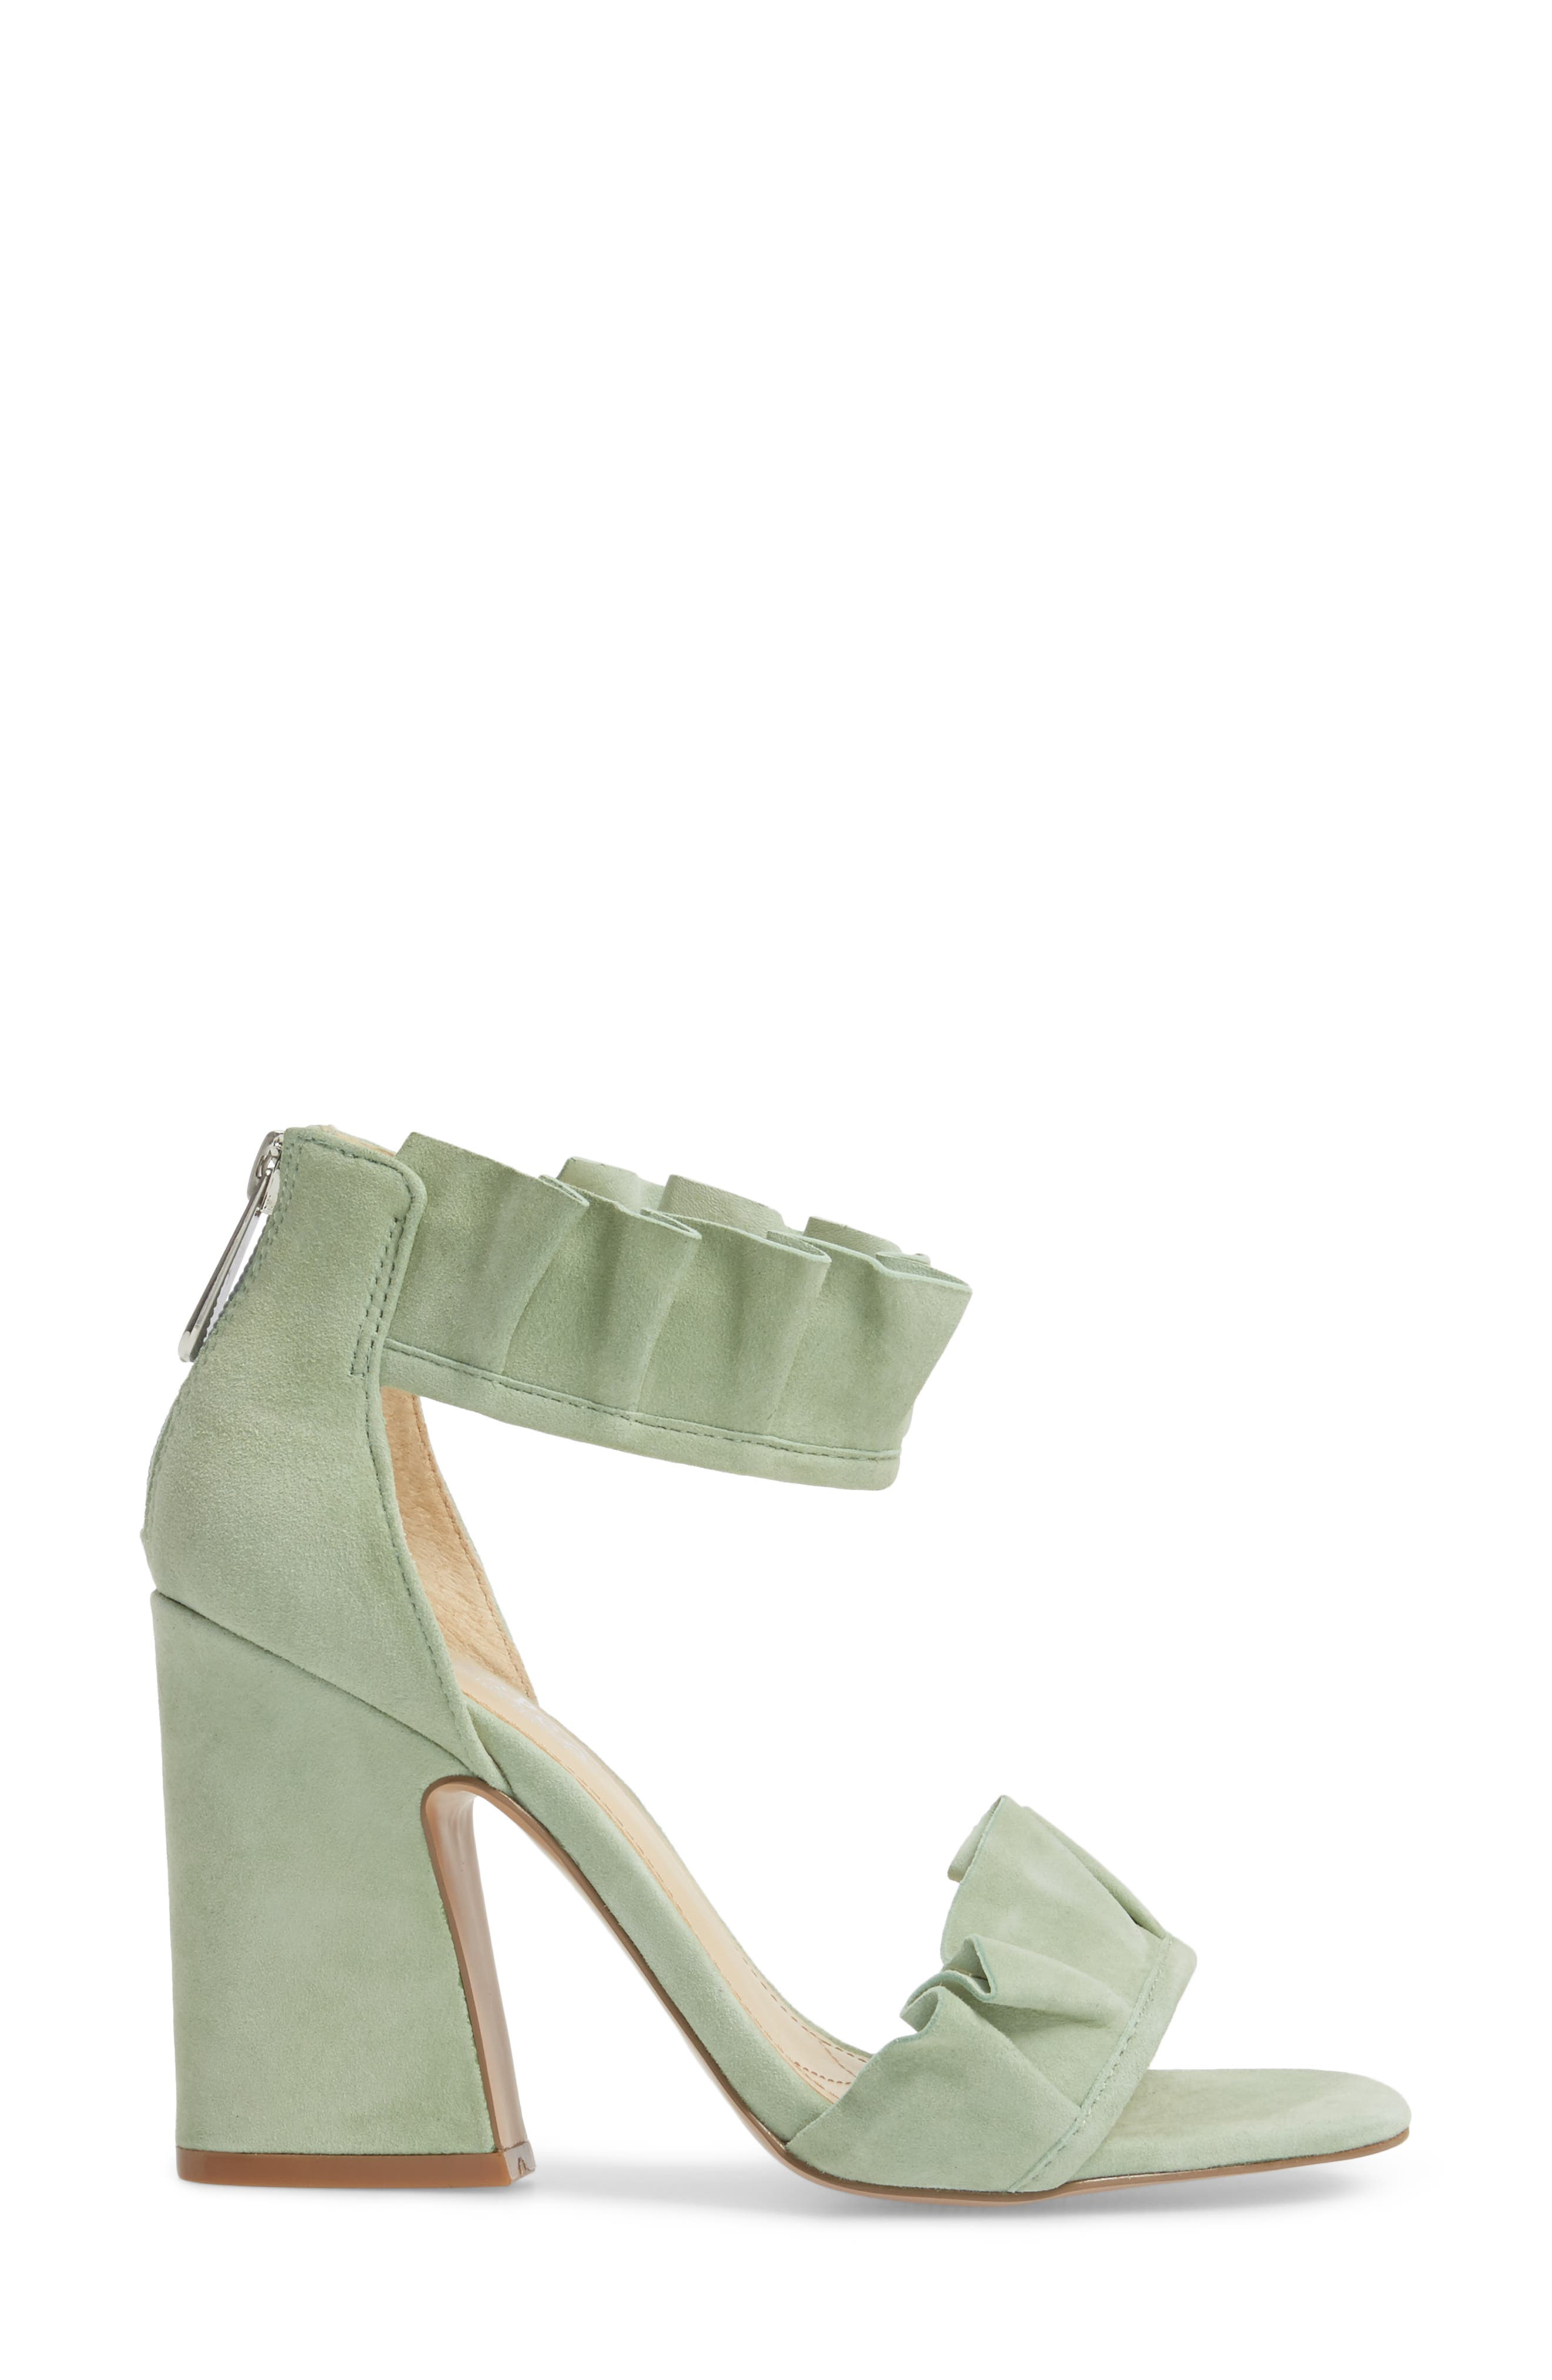 Haley Ruffle Sandal,                             Alternate thumbnail 3, color,                             MINT SUEDE